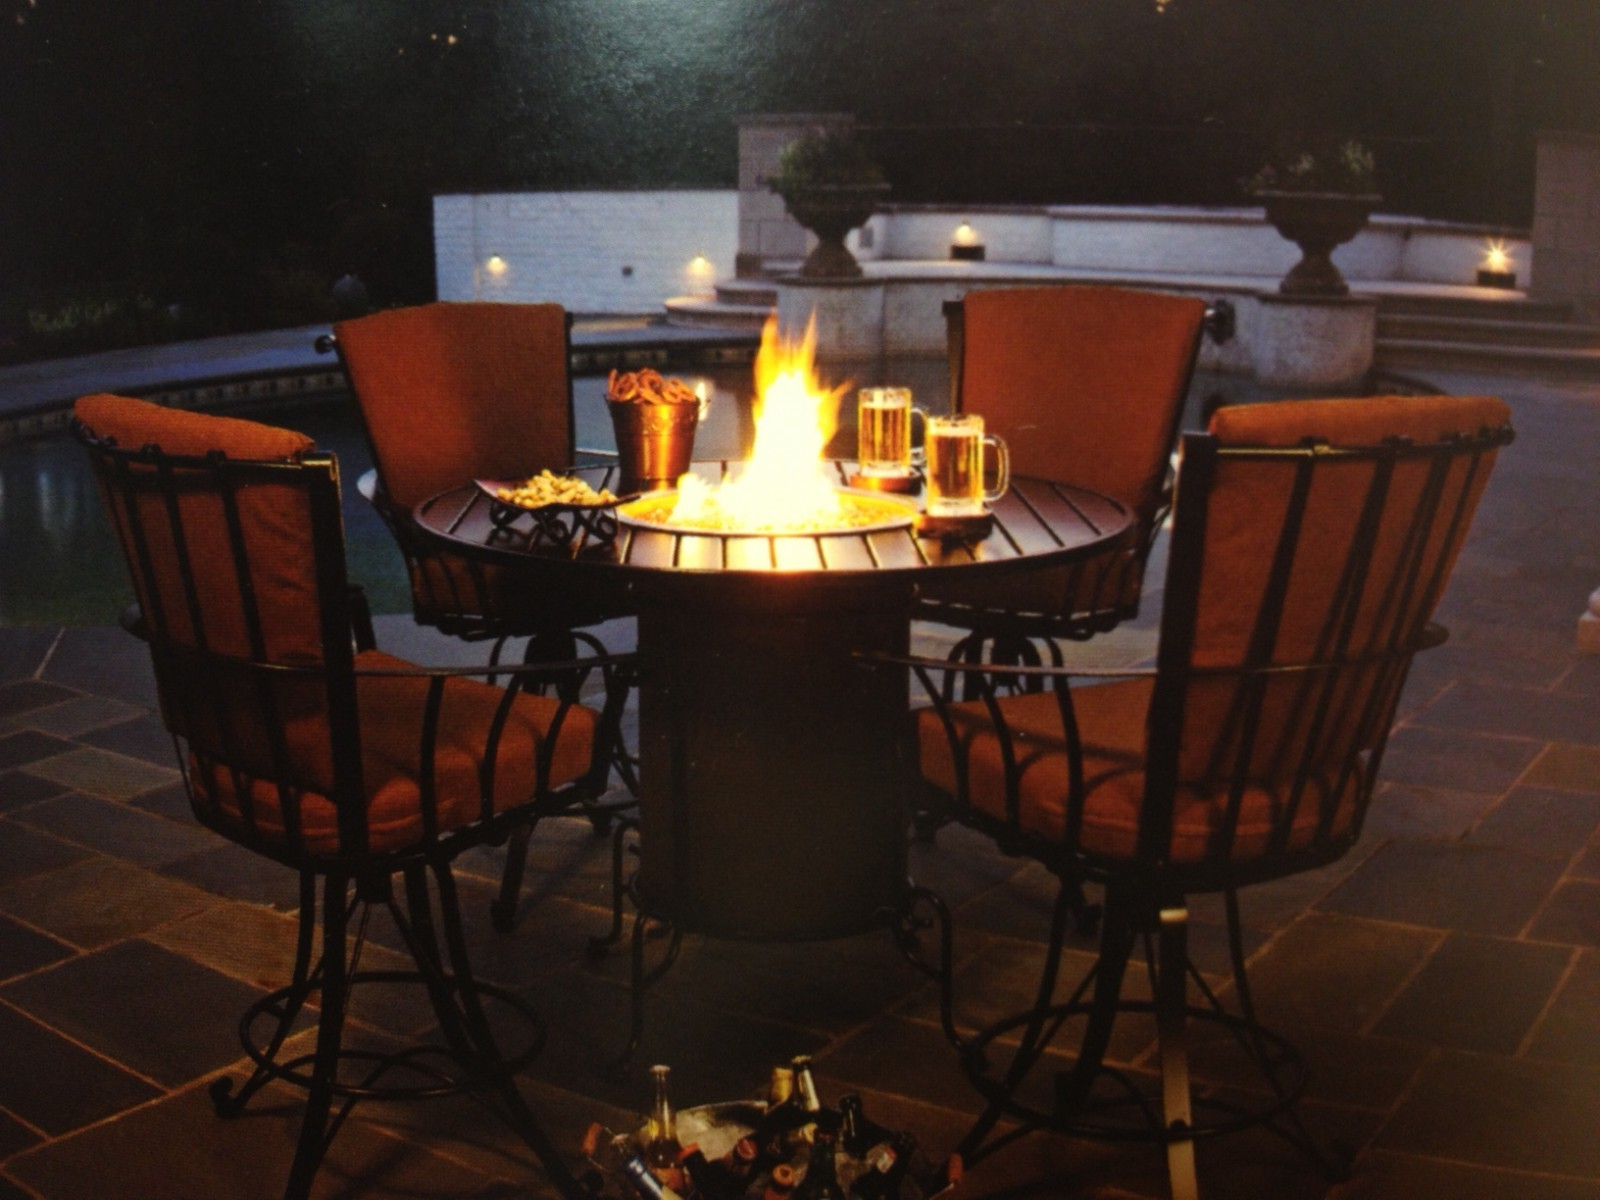 Meadowcraft hot tubs fireplaces patio furniture heat for Balcony restaurant group